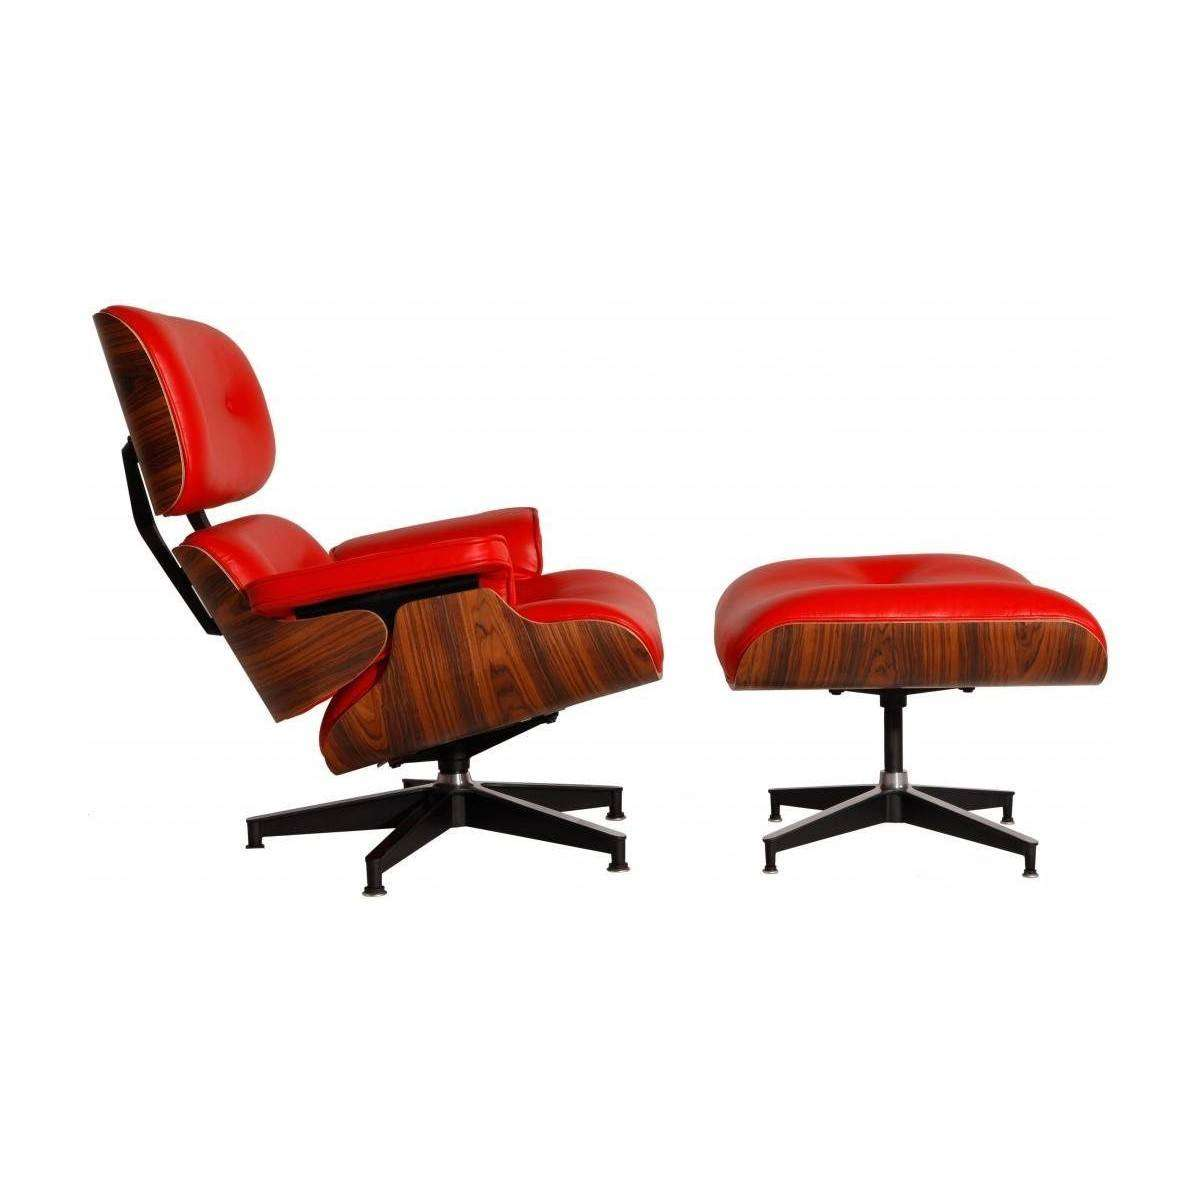 Top rated eames chair replica reproduction modterior usa for Lounge chair replica erfahrungen